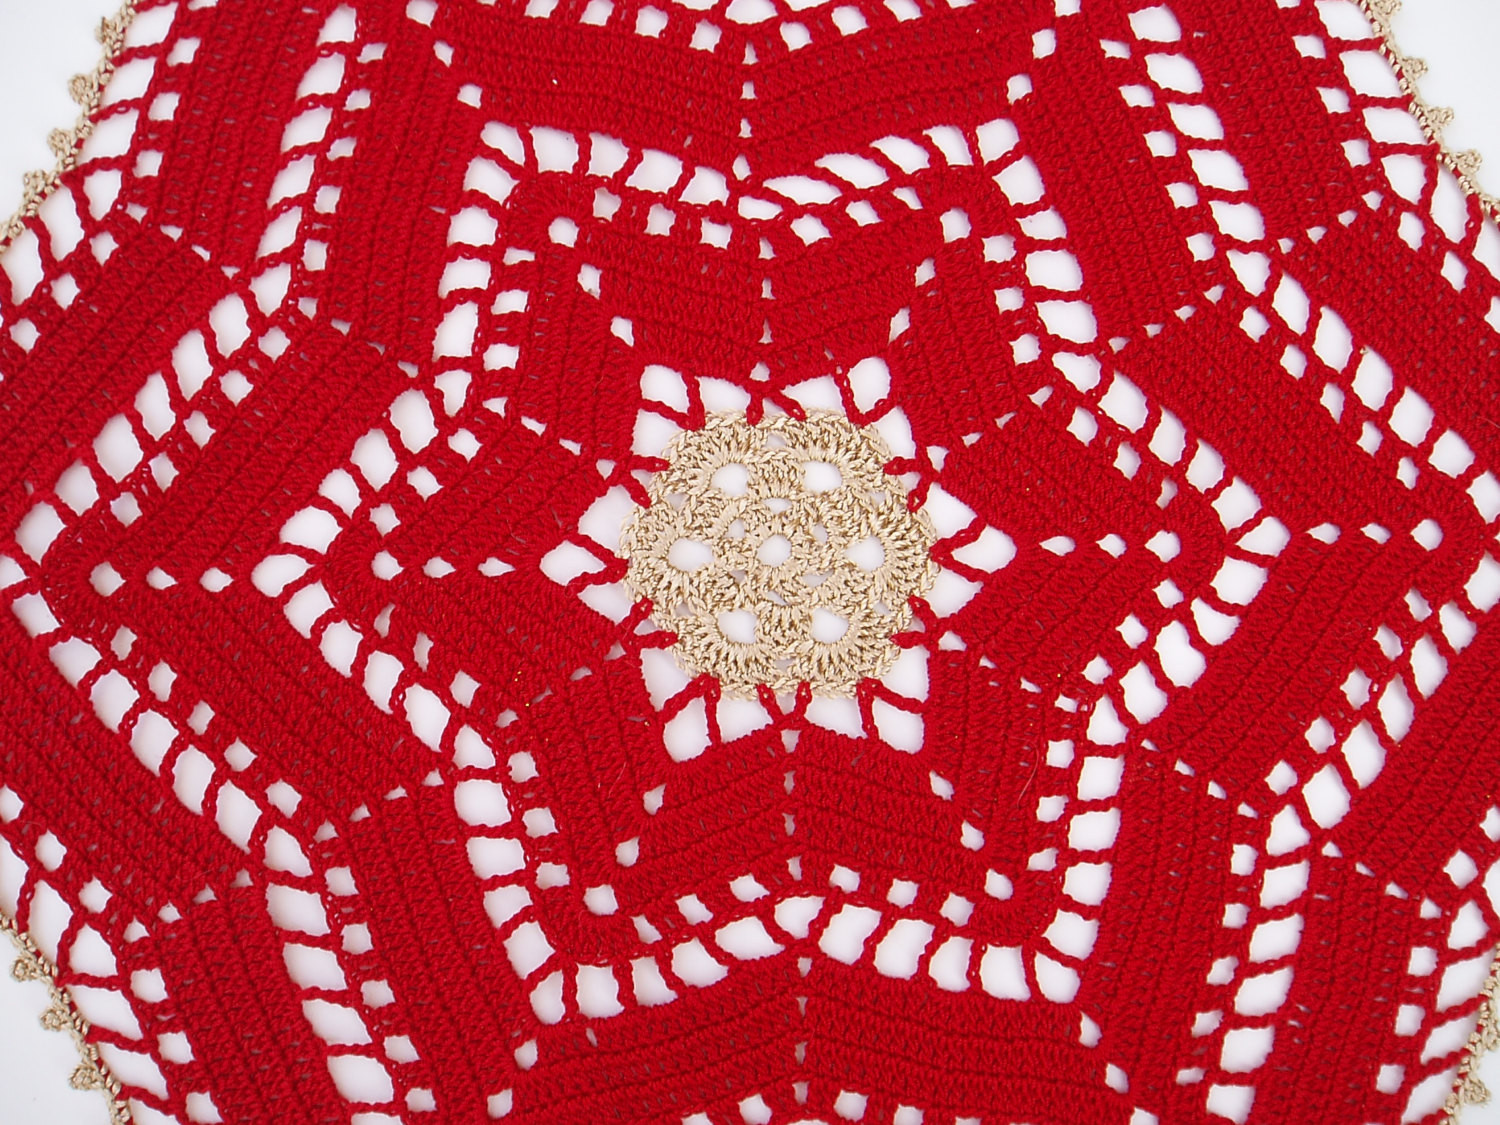 Red Doilies Fresh Lace Crochet Christmas Table Decoration Lace Crochet Of Luxury 43 Images Red Doilies